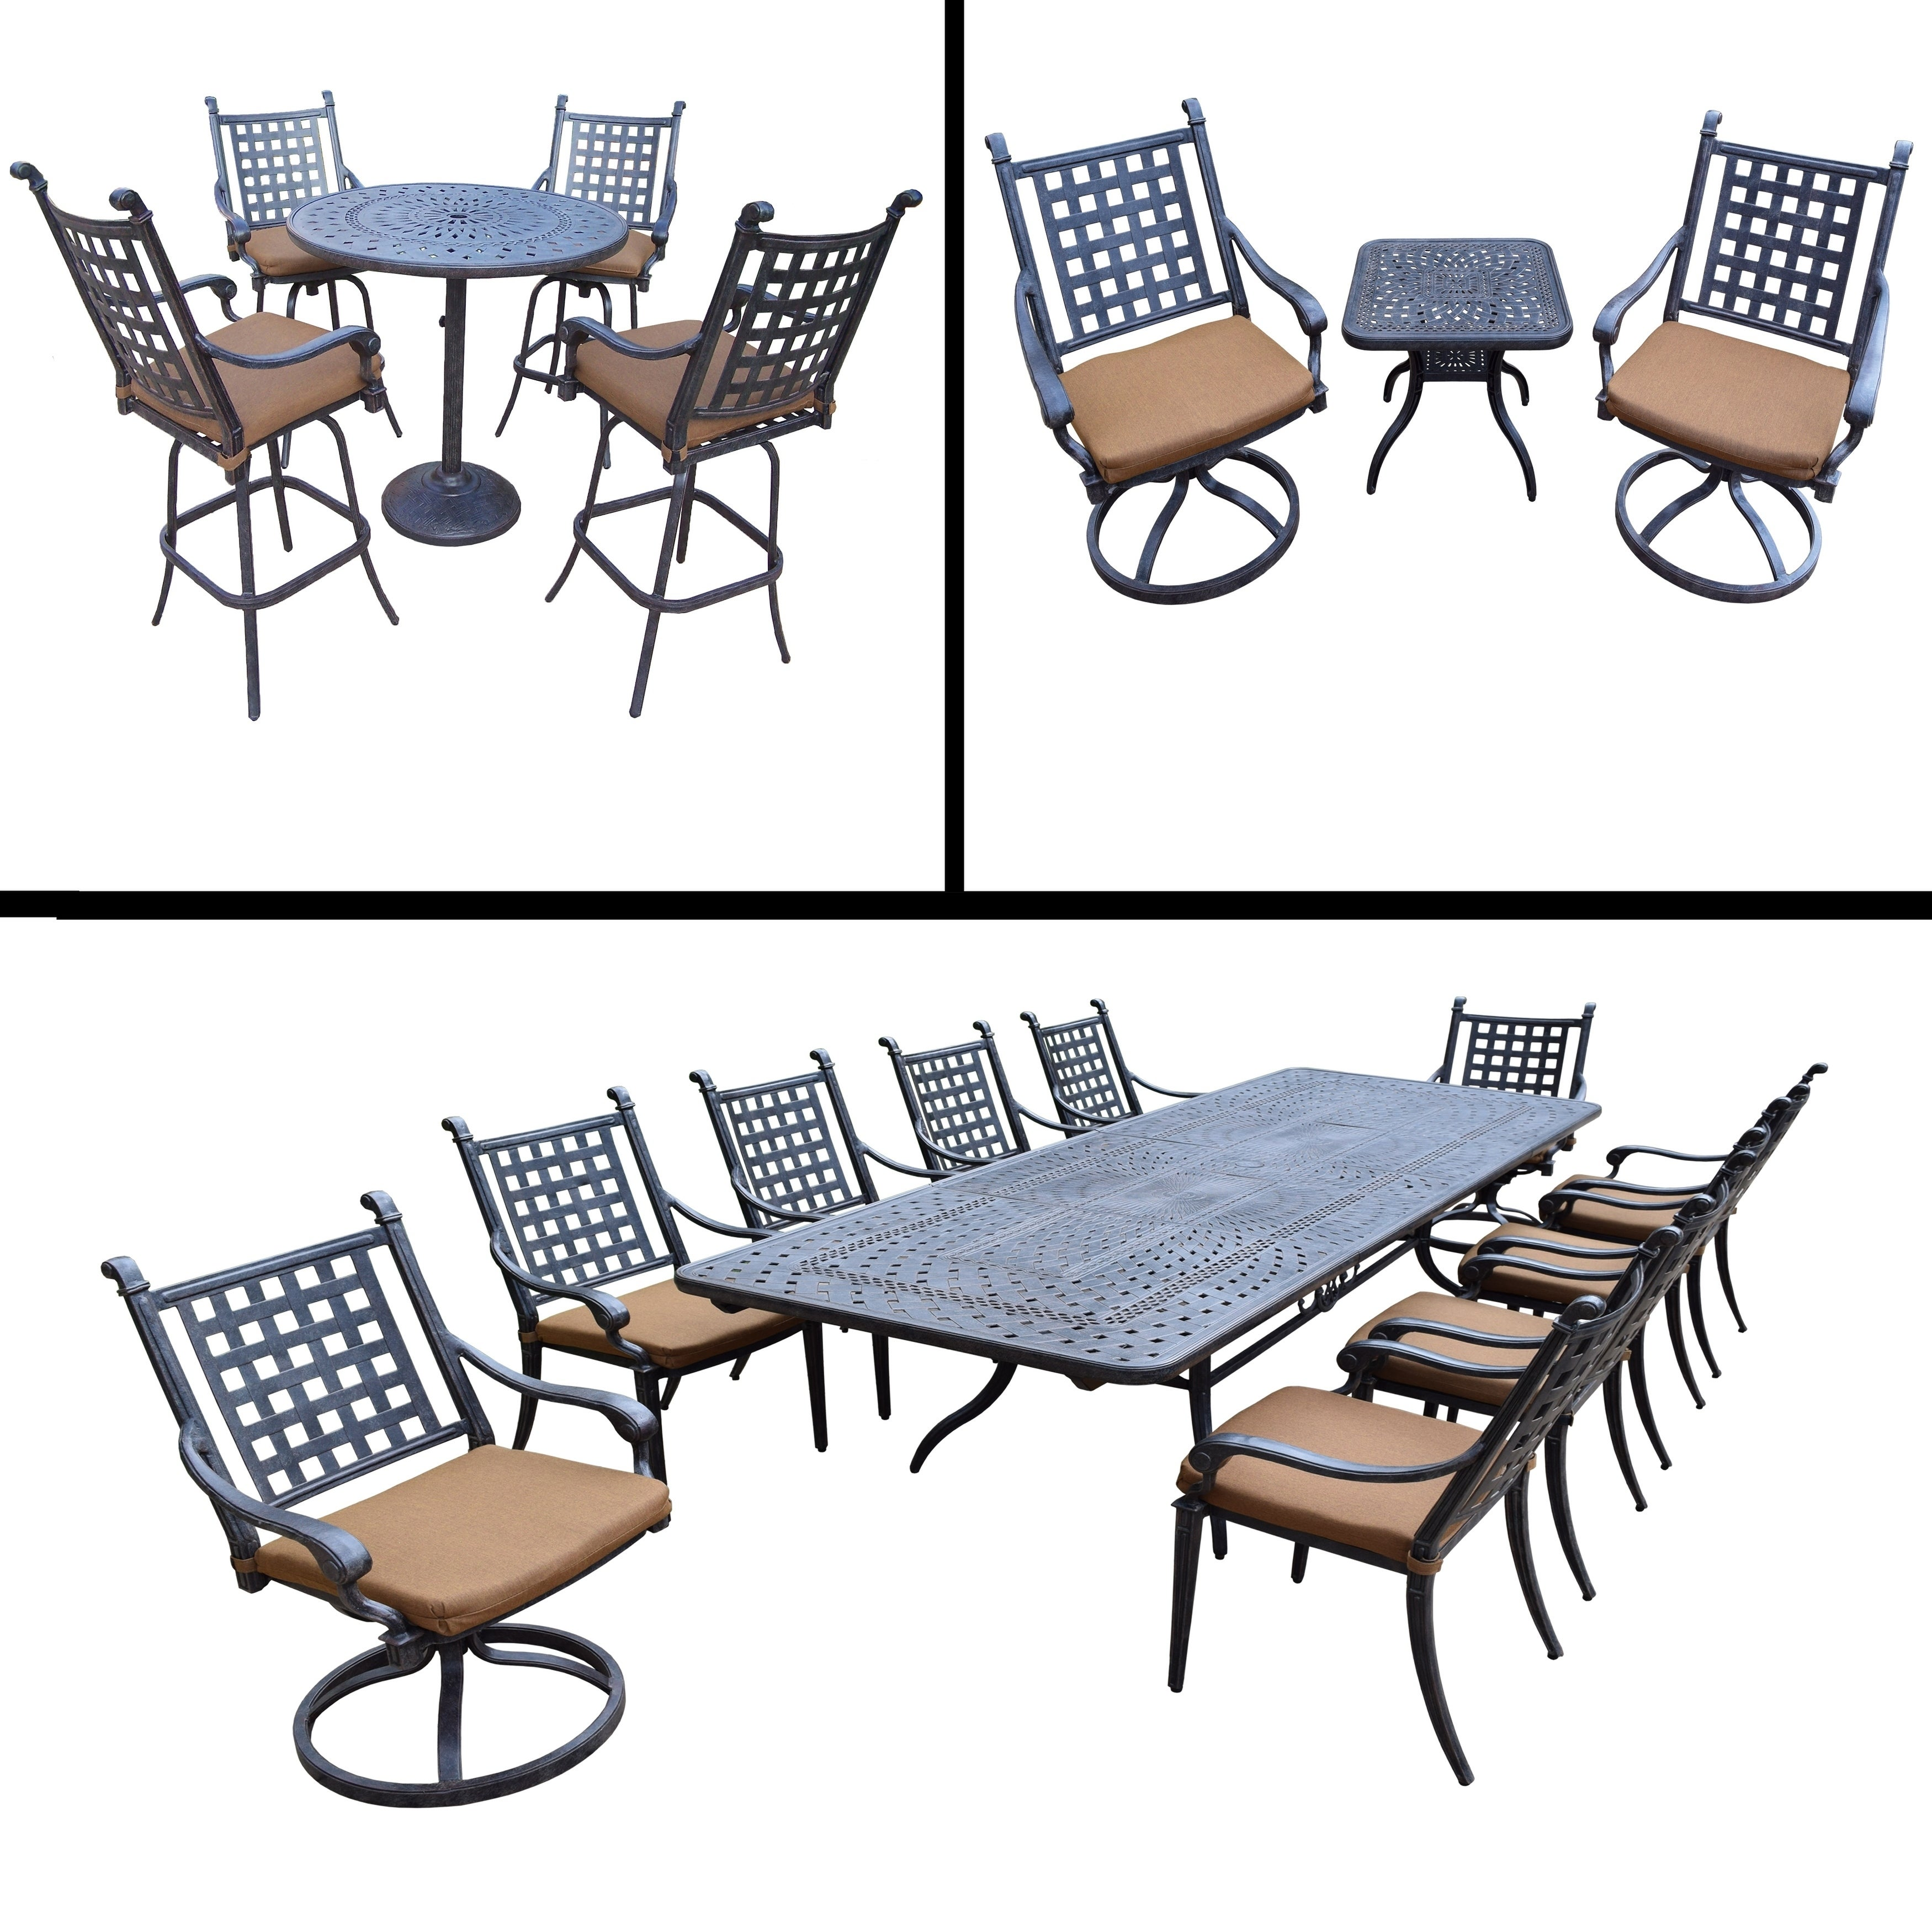 Premier Sunbrella Cushioned Set Includes 5 Pc Bar Set, 11 Pc Dining Set  With Extendable